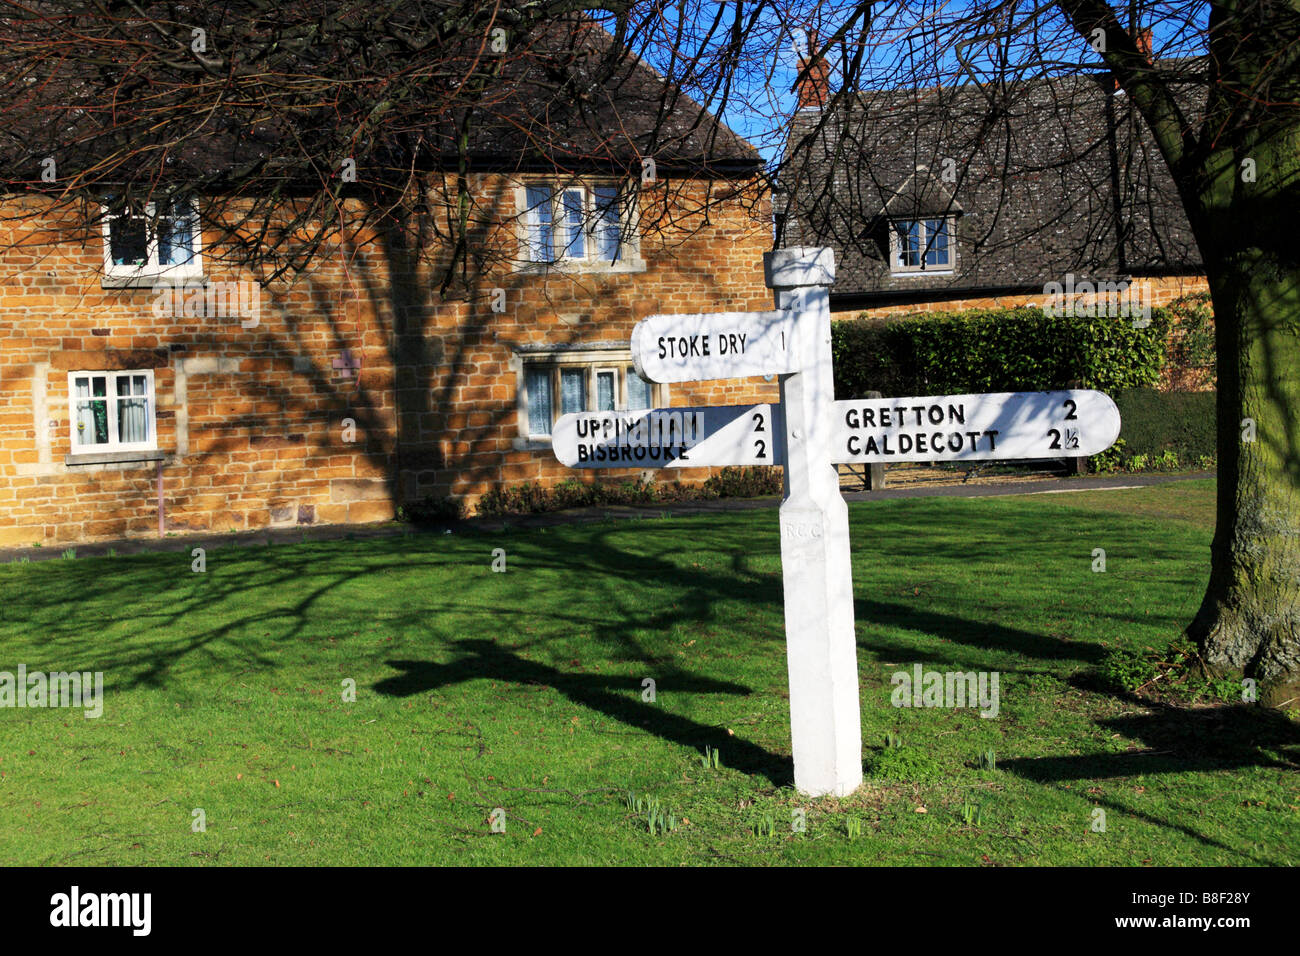 A village finger post with direction signs - Stock Image